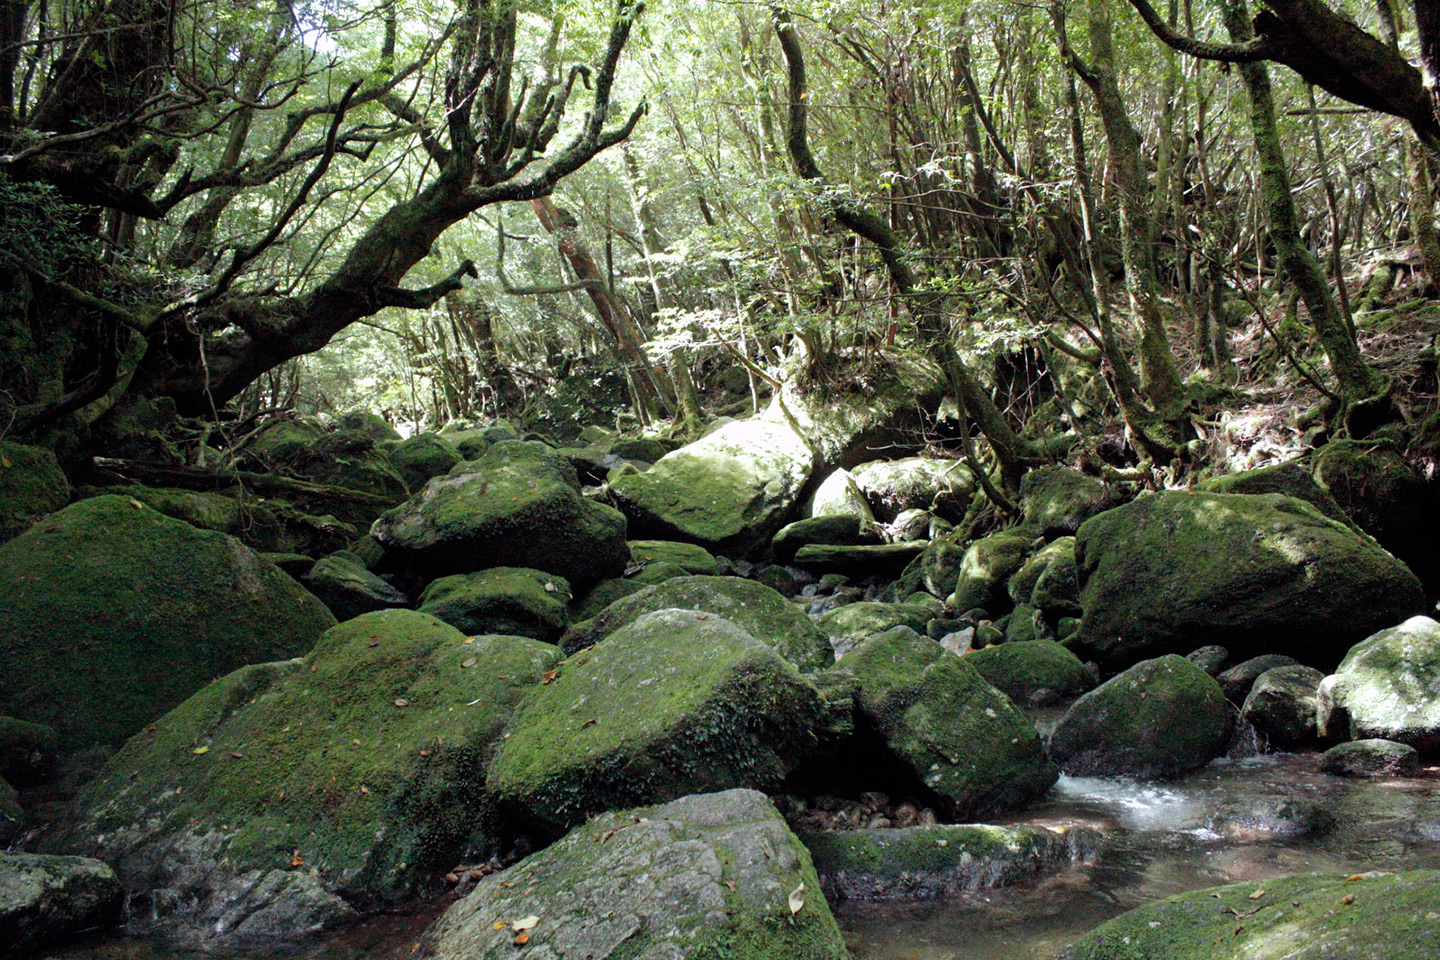 rocky stream bed in forest